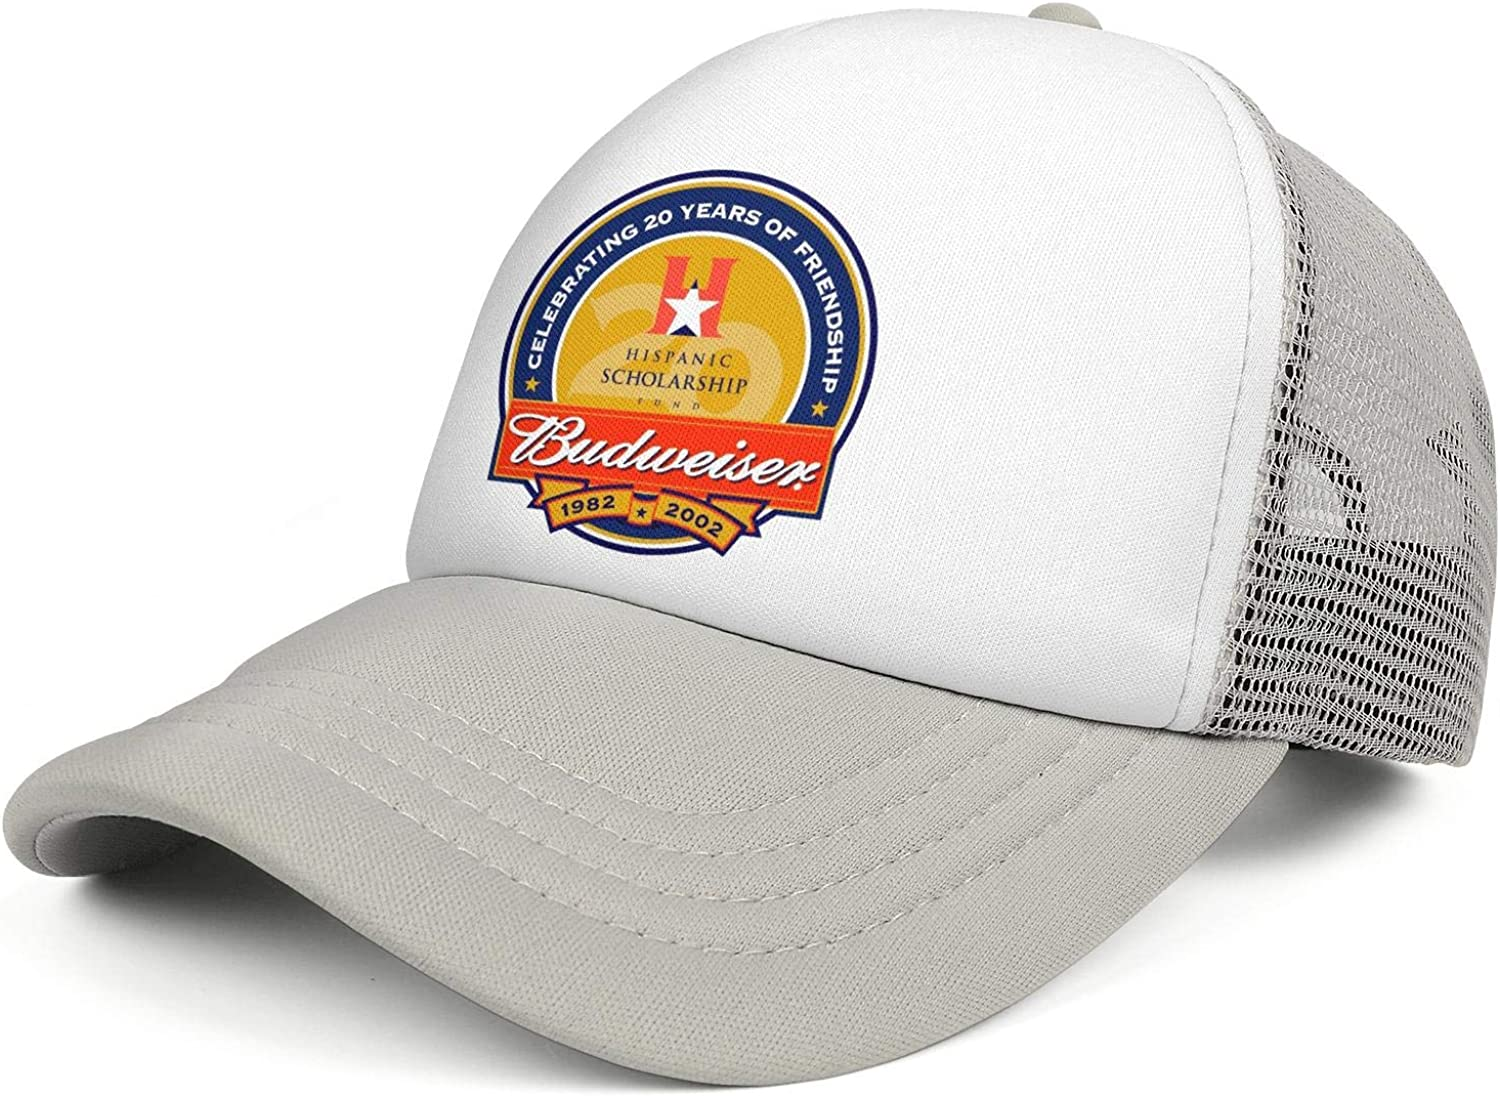 Mens and Womens Great Budweiser 8 Free Vector in Encapsulated Postscript Eps Trucker Flat Baseball HatAll Cotton Vintage